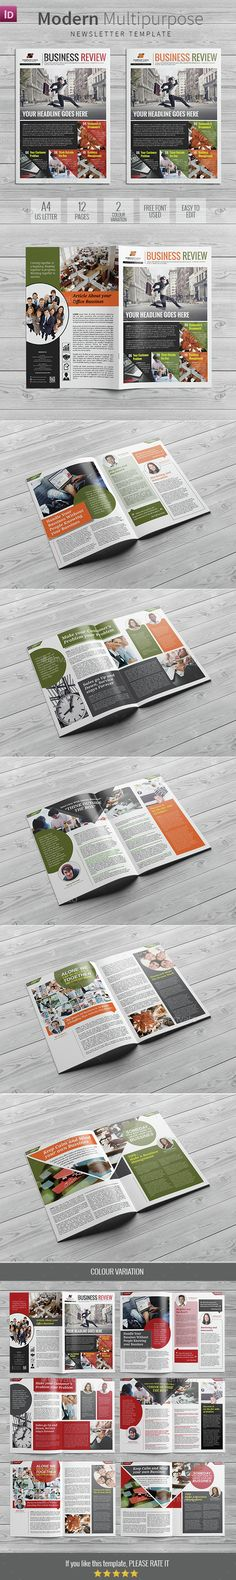 Modern Multipurpose Newsletter Template InDesign INDD. Download here: http://graphicriver.net/item/modern-multipurpose-newsletter/15334059?ref=ksioks